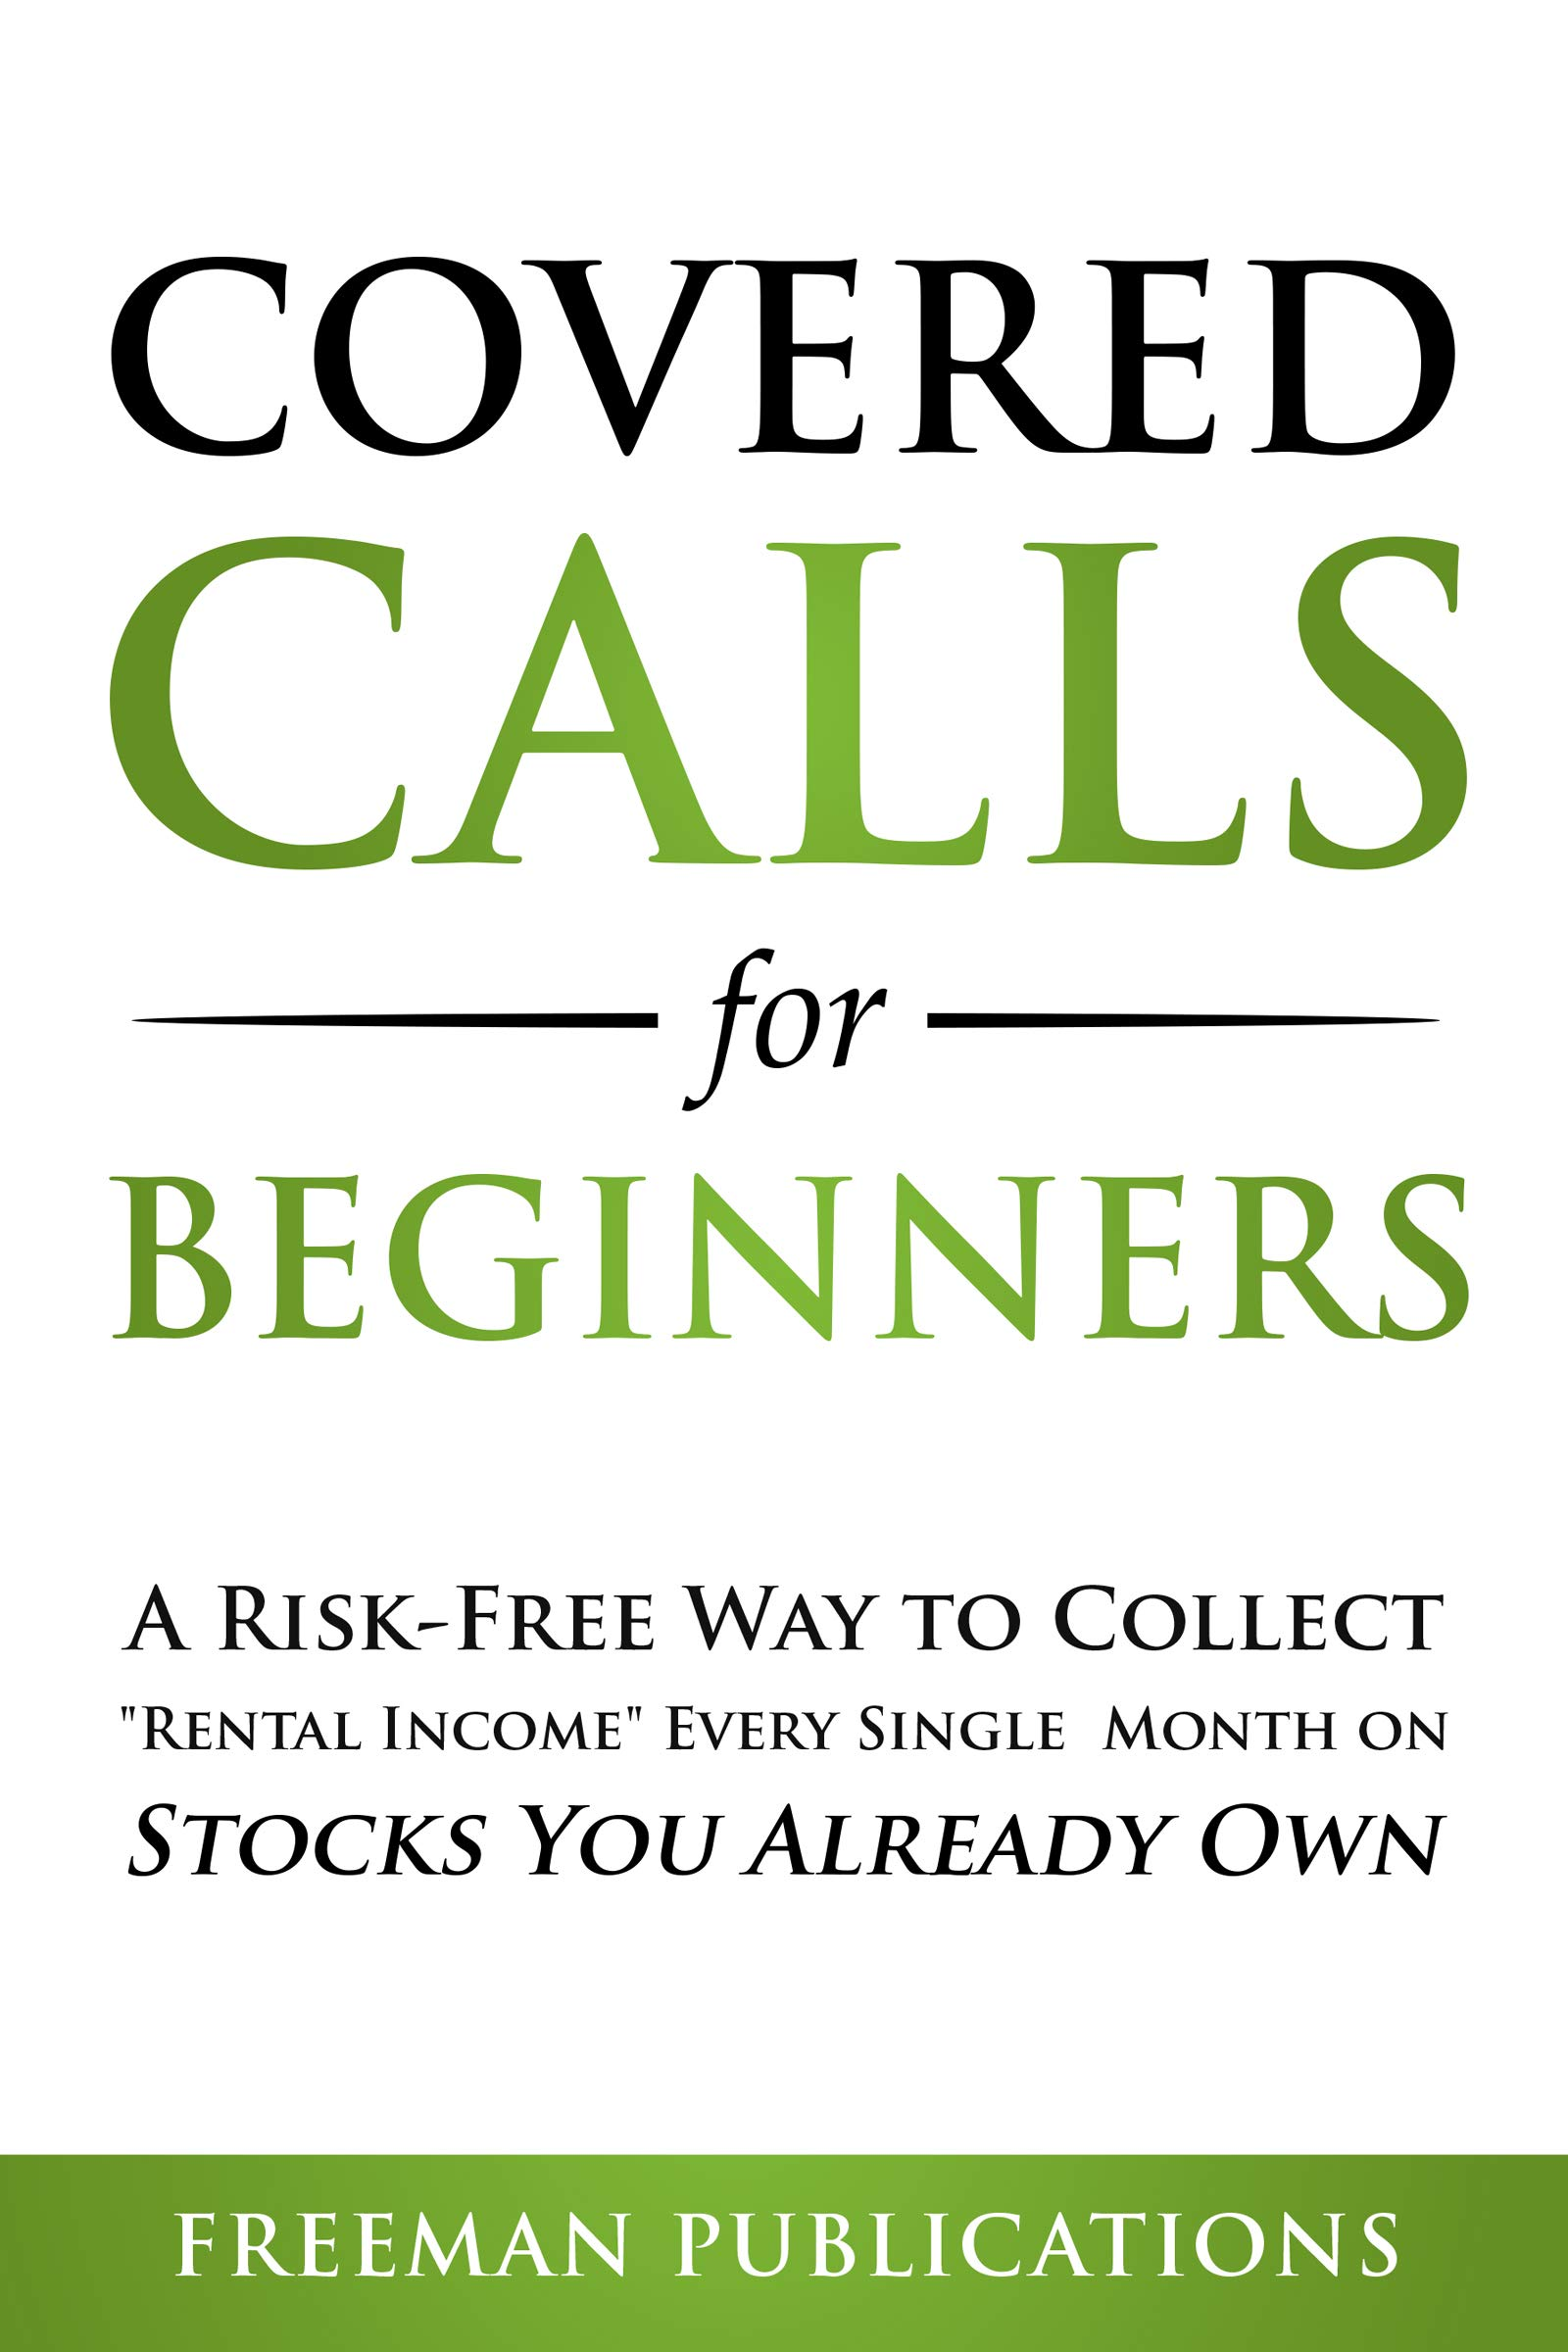 Covered Calls for Beginners: A Risk-Free Way to Collect